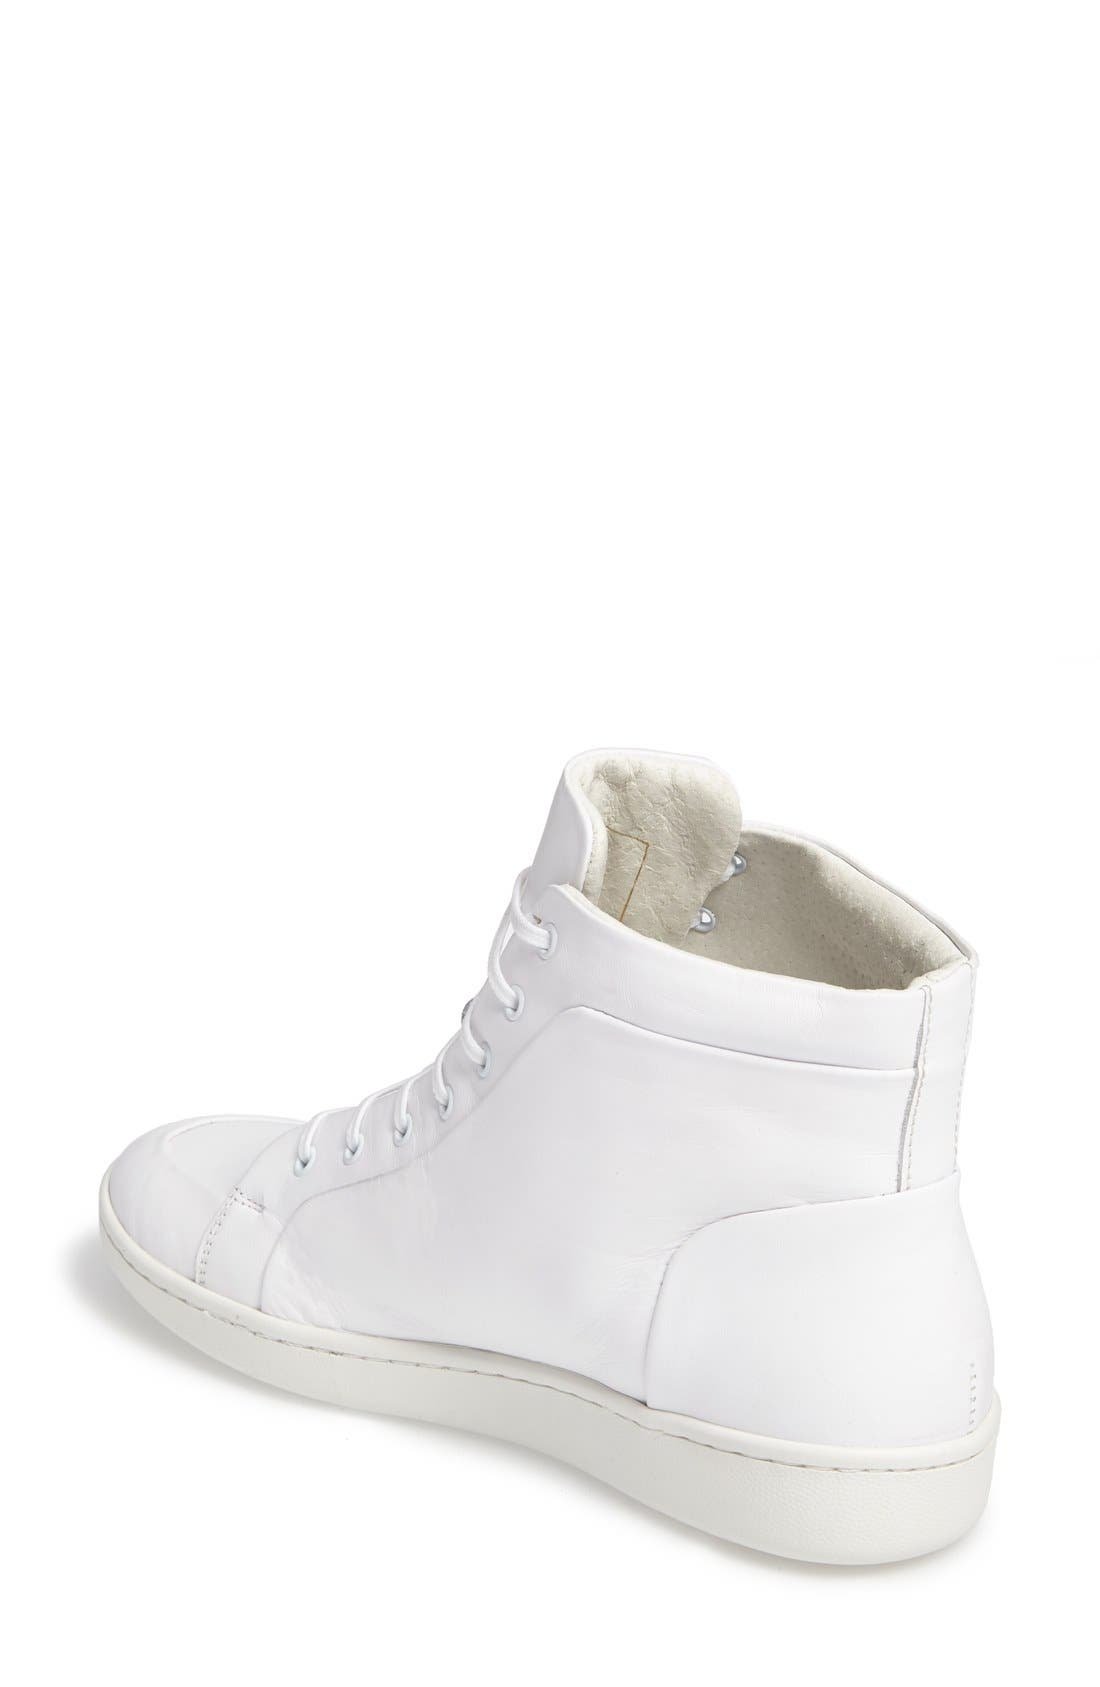 Molly High Top Sneaker,                             Alternate thumbnail 2, color,                             White Leather